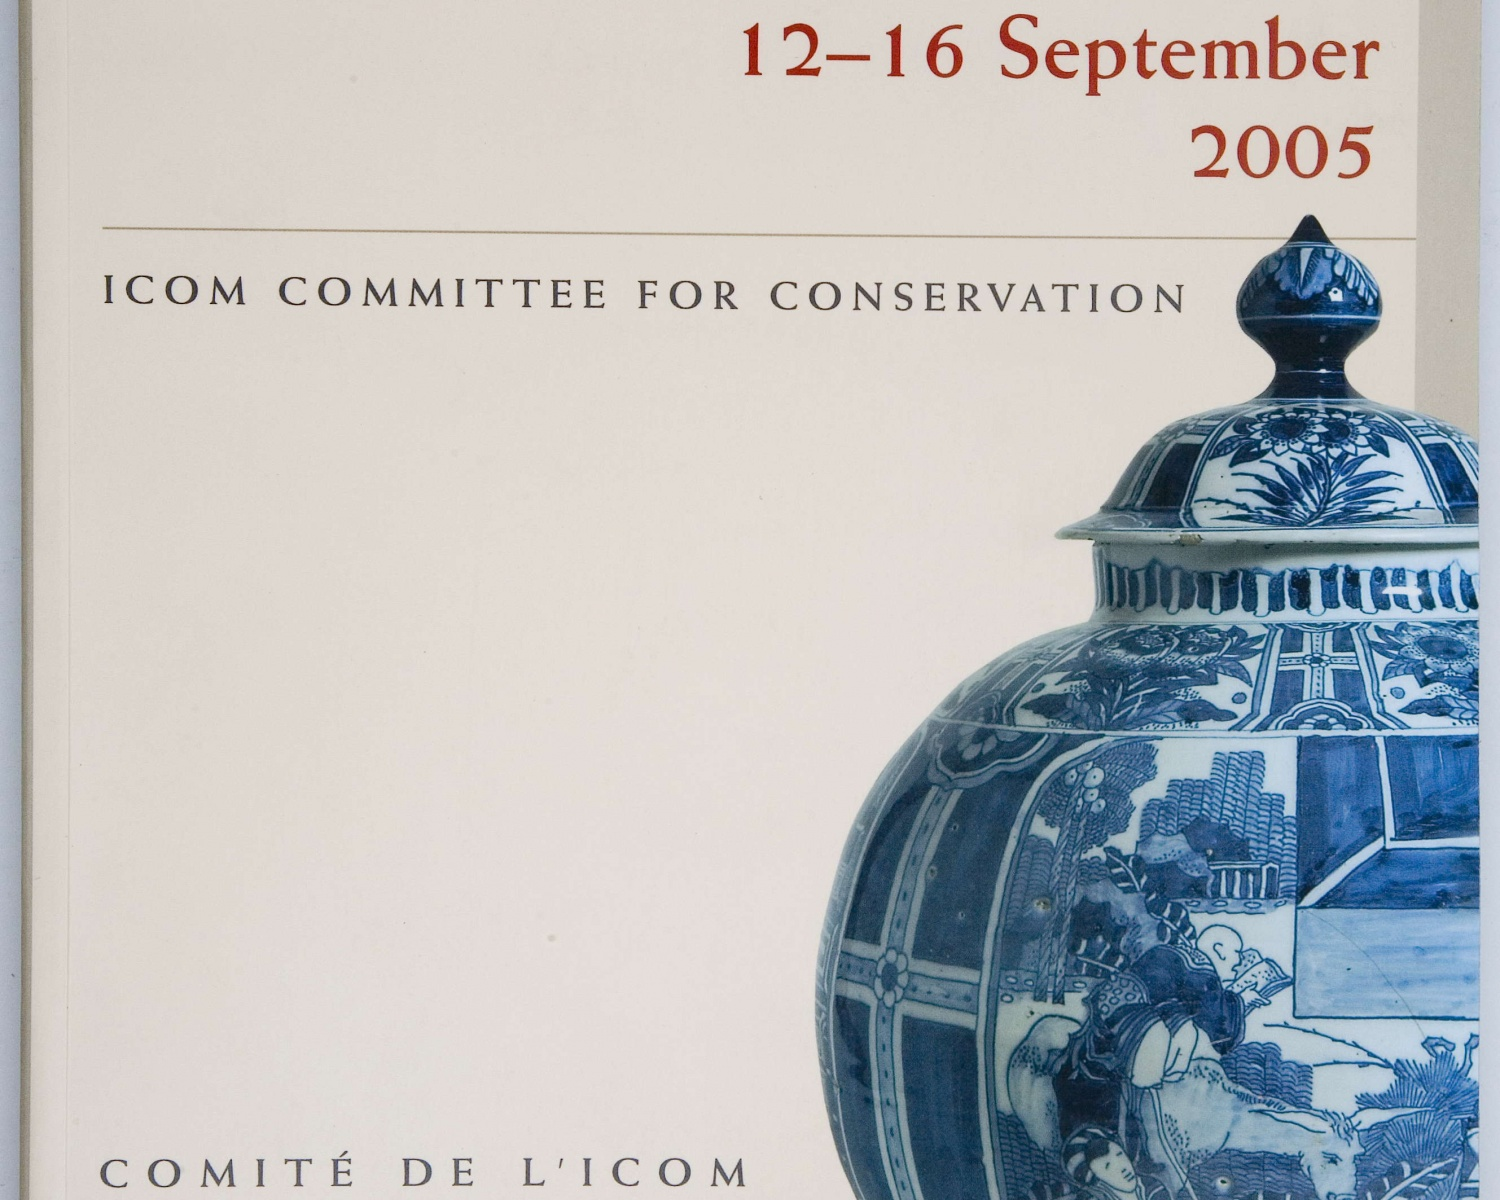 ICOM Committee for Conservation. 14th Triennial Meeting 12-16 september 2005: preprints. London: James & James, cop. 2005